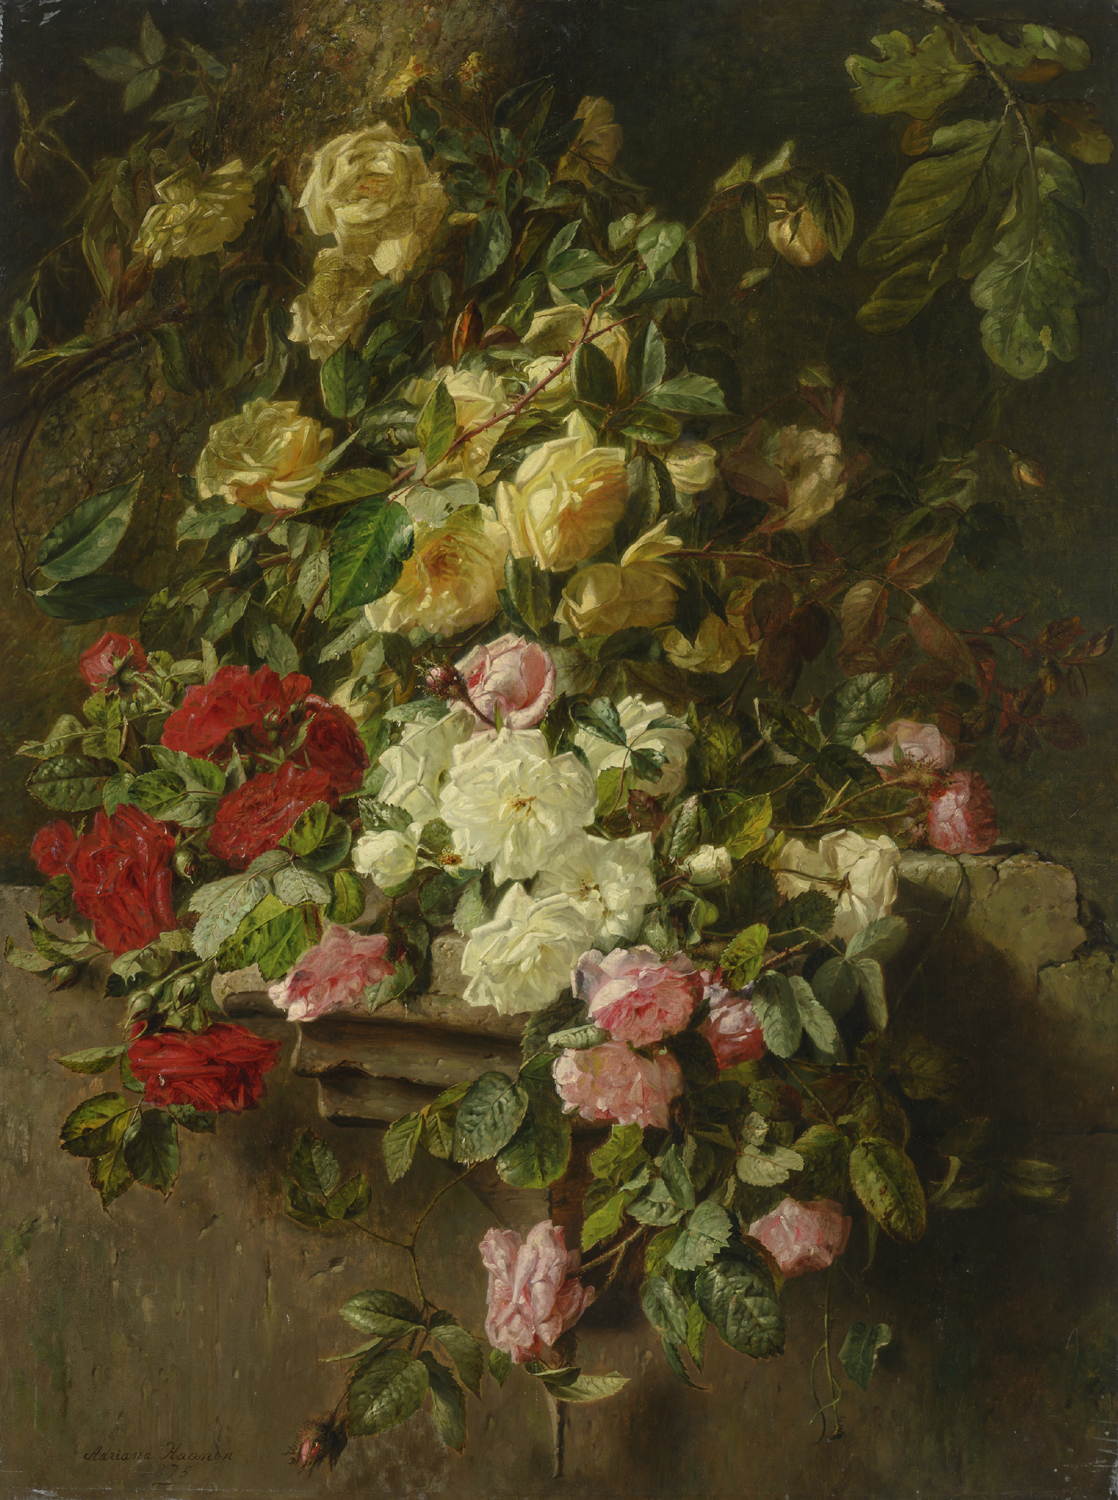 Adriana Haanen | A still life with roses | Kunsthandel Bies | Bies Gallery